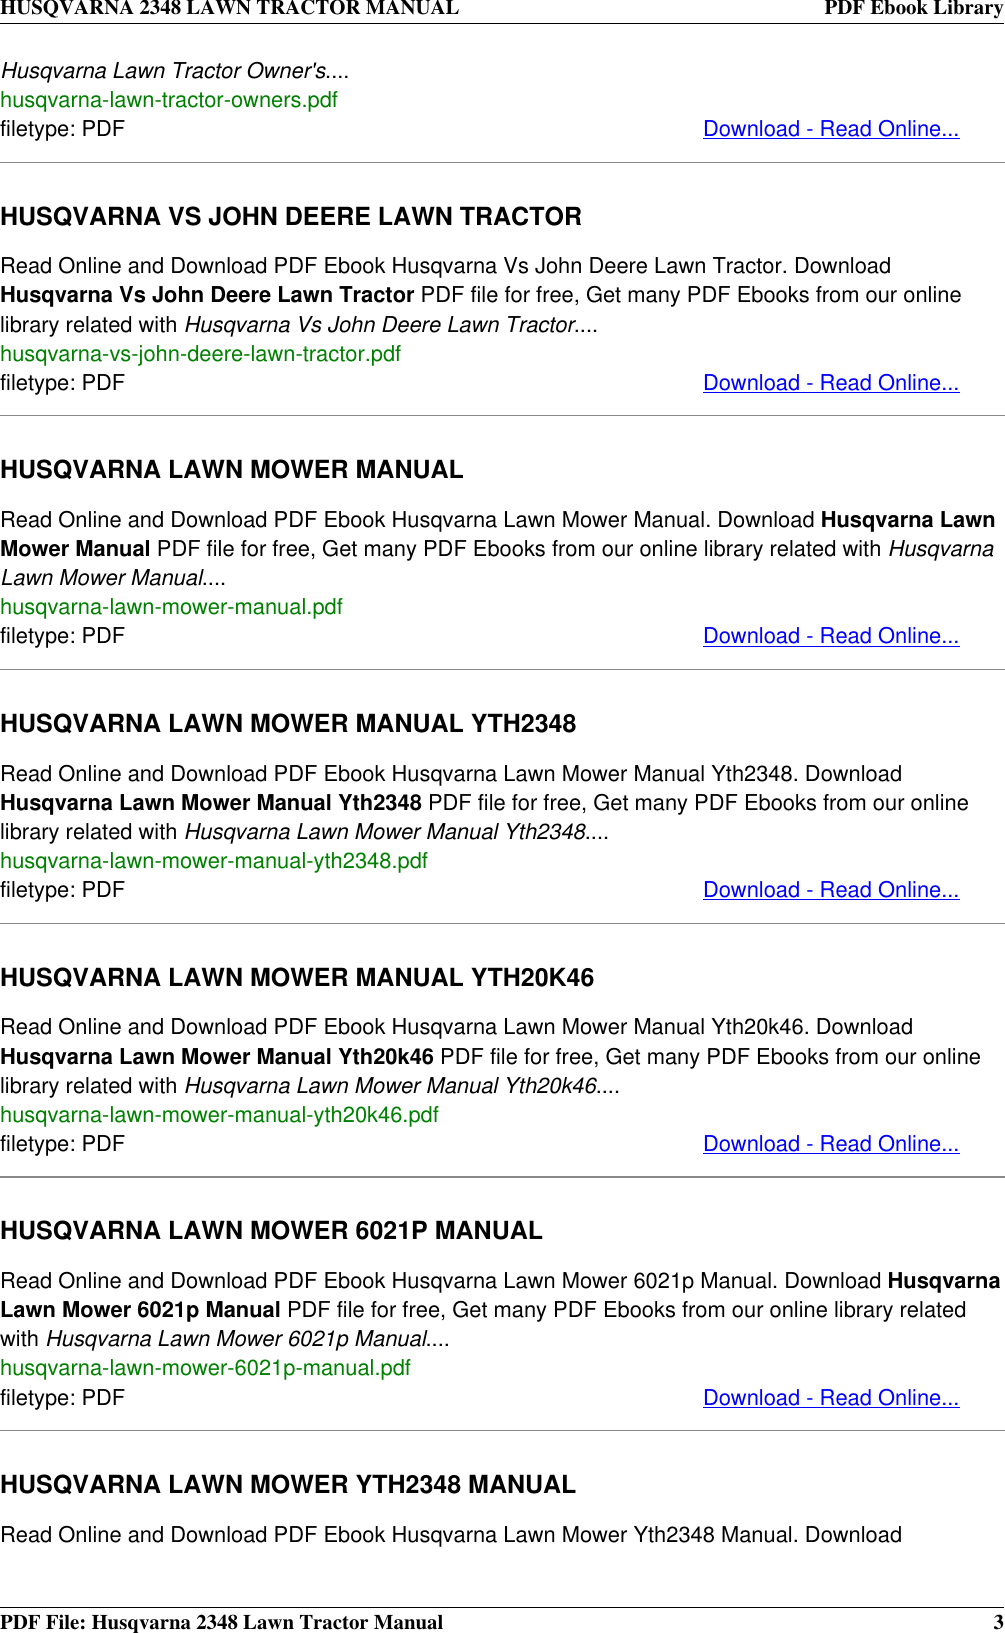 ... Array - honda hf 2417 manual ebook rh honda hf 2417 manual ebook  zettadata solutions